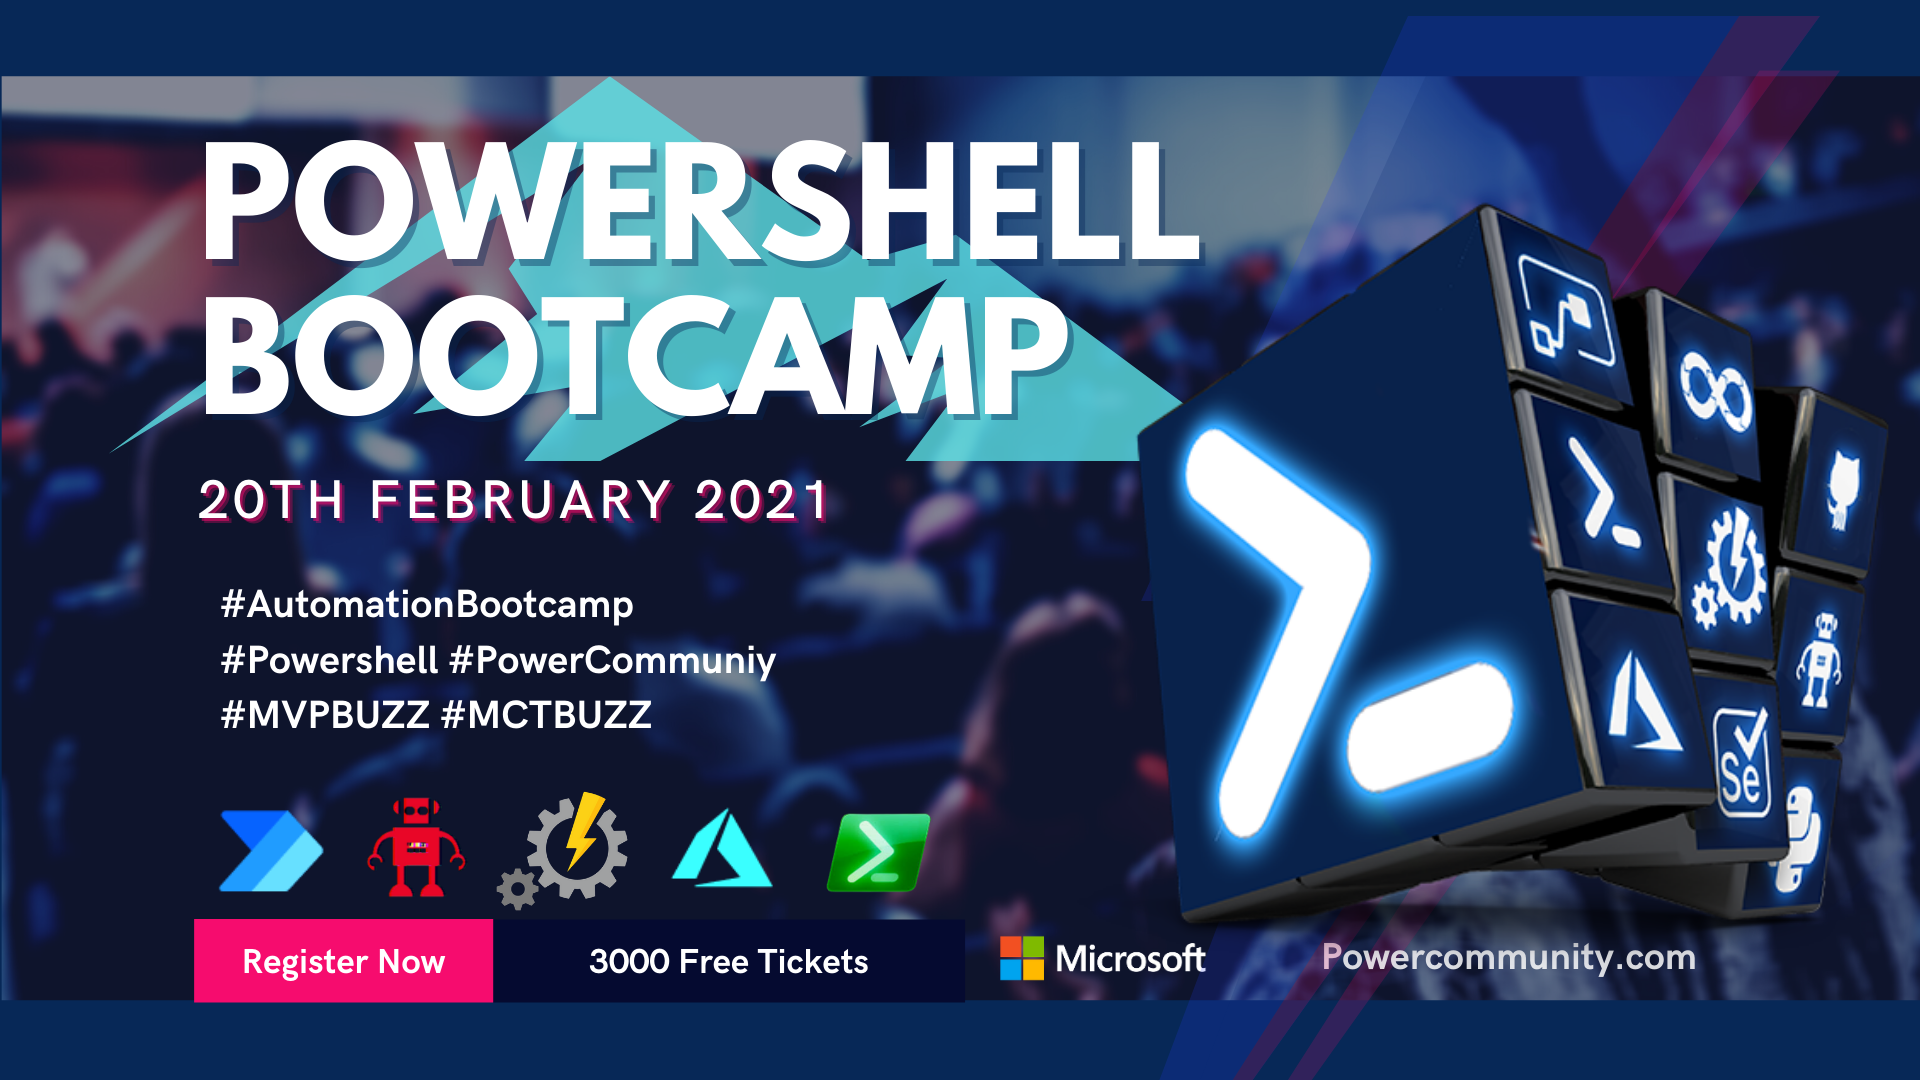 Powershell Bootcamp 2021